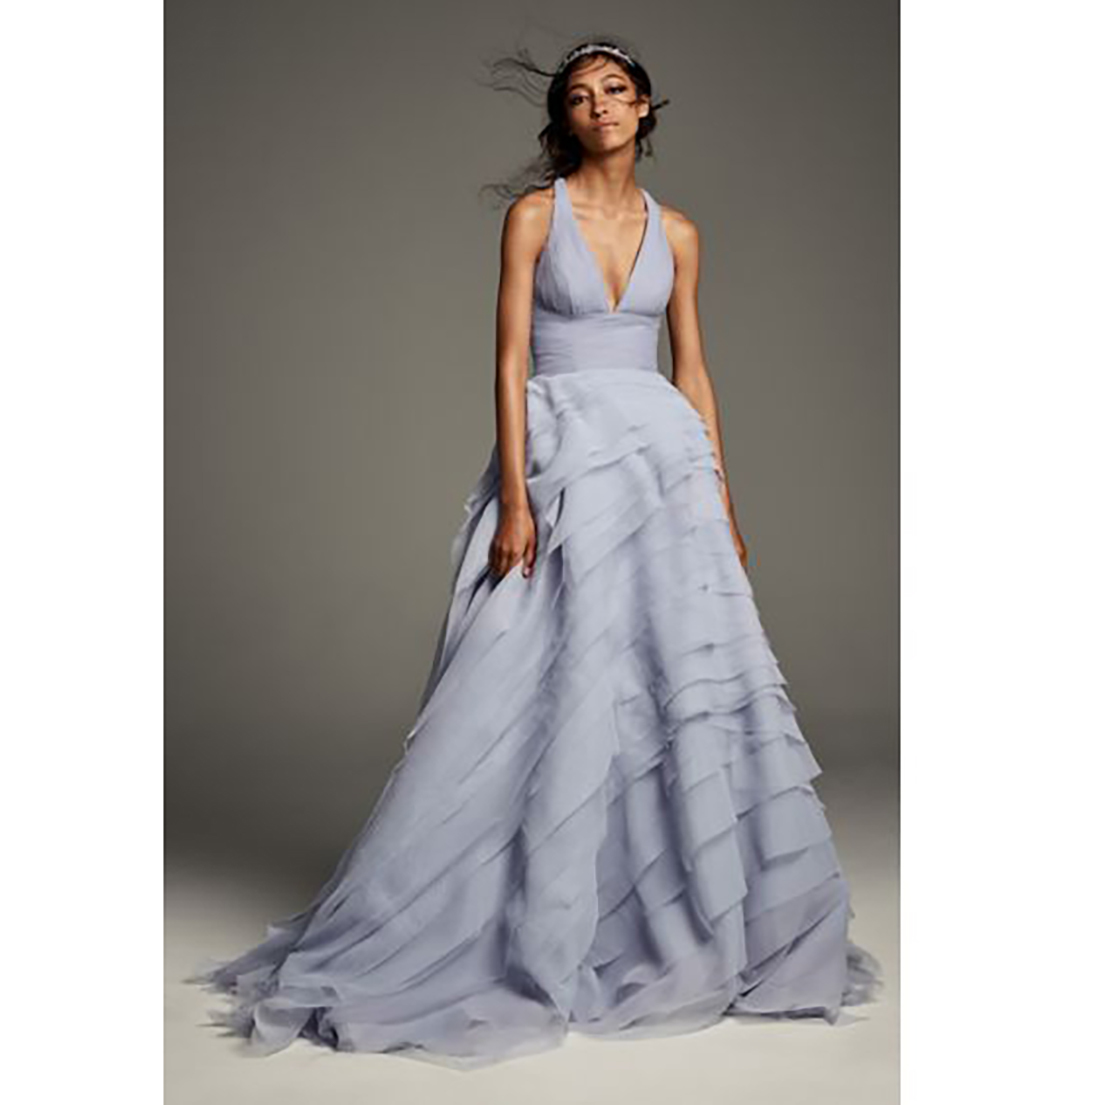 78b42af9730 Shades of Gray Wedding Dress  White by Vera Wang Tiered Organza T-Back Ball  Gown Wedding Dress